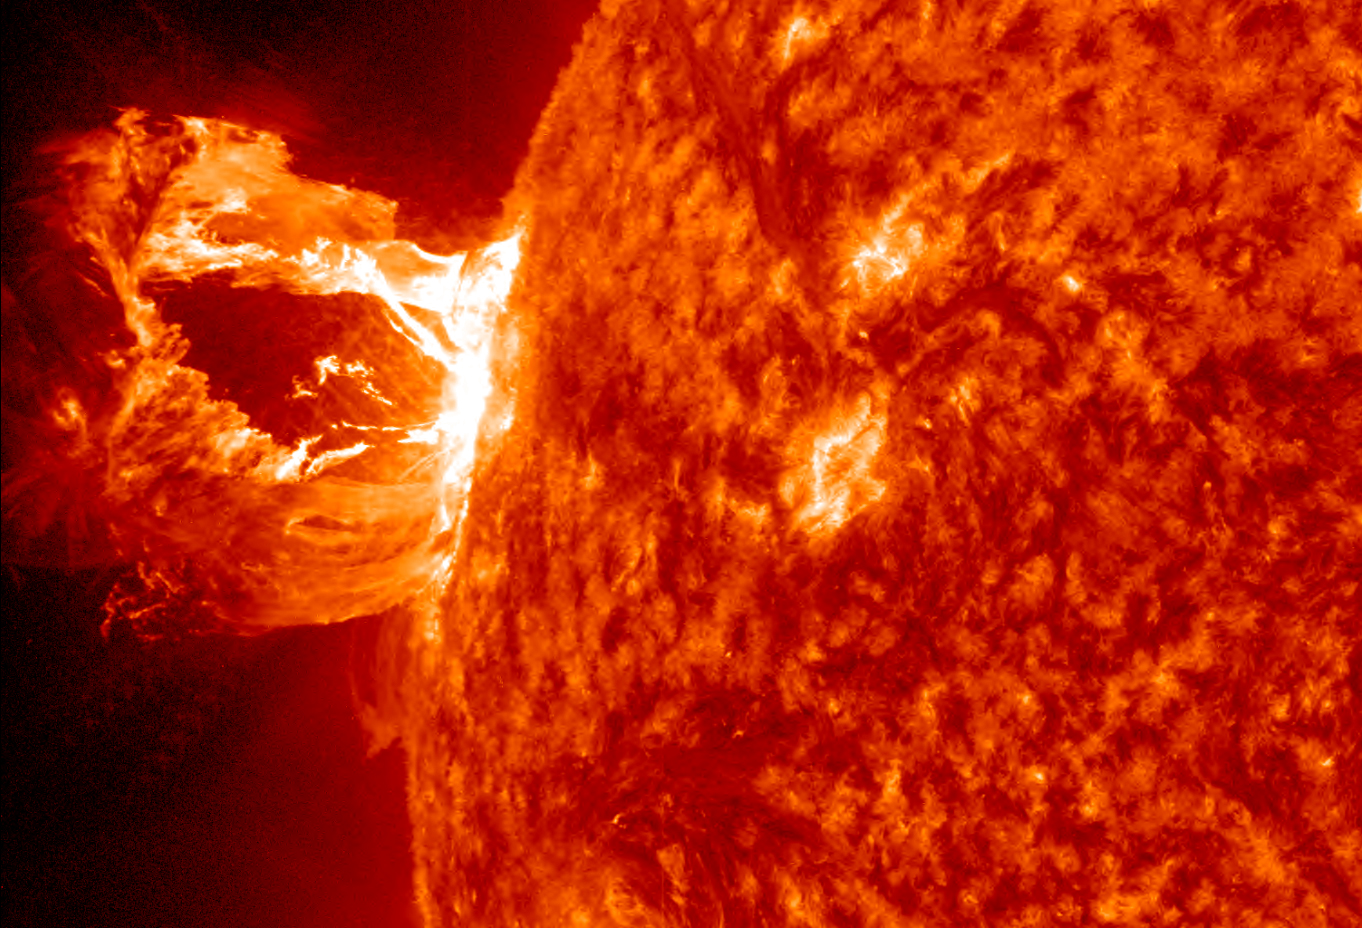 NASA - Giant Prominence Erupts